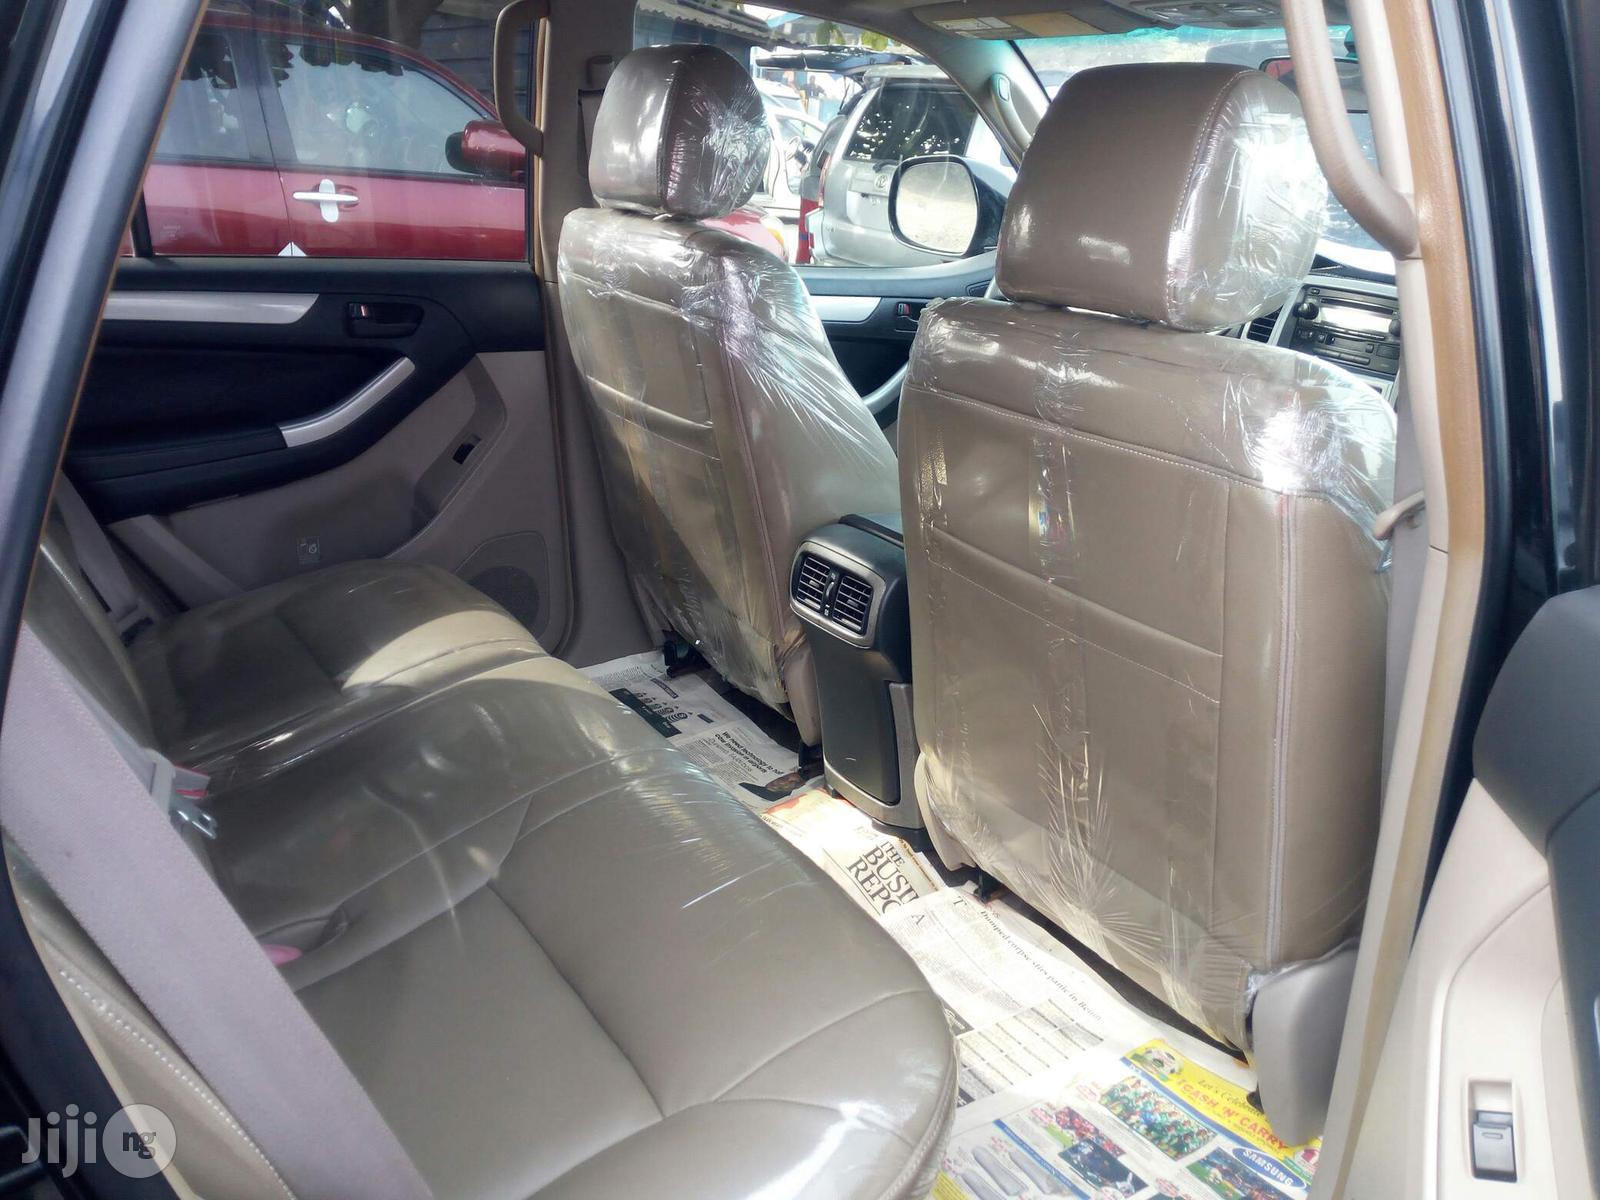 Toyota 4-Runner 2005 Limited V6 4x4 Black | Cars for sale in Apapa, Lagos State, Nigeria